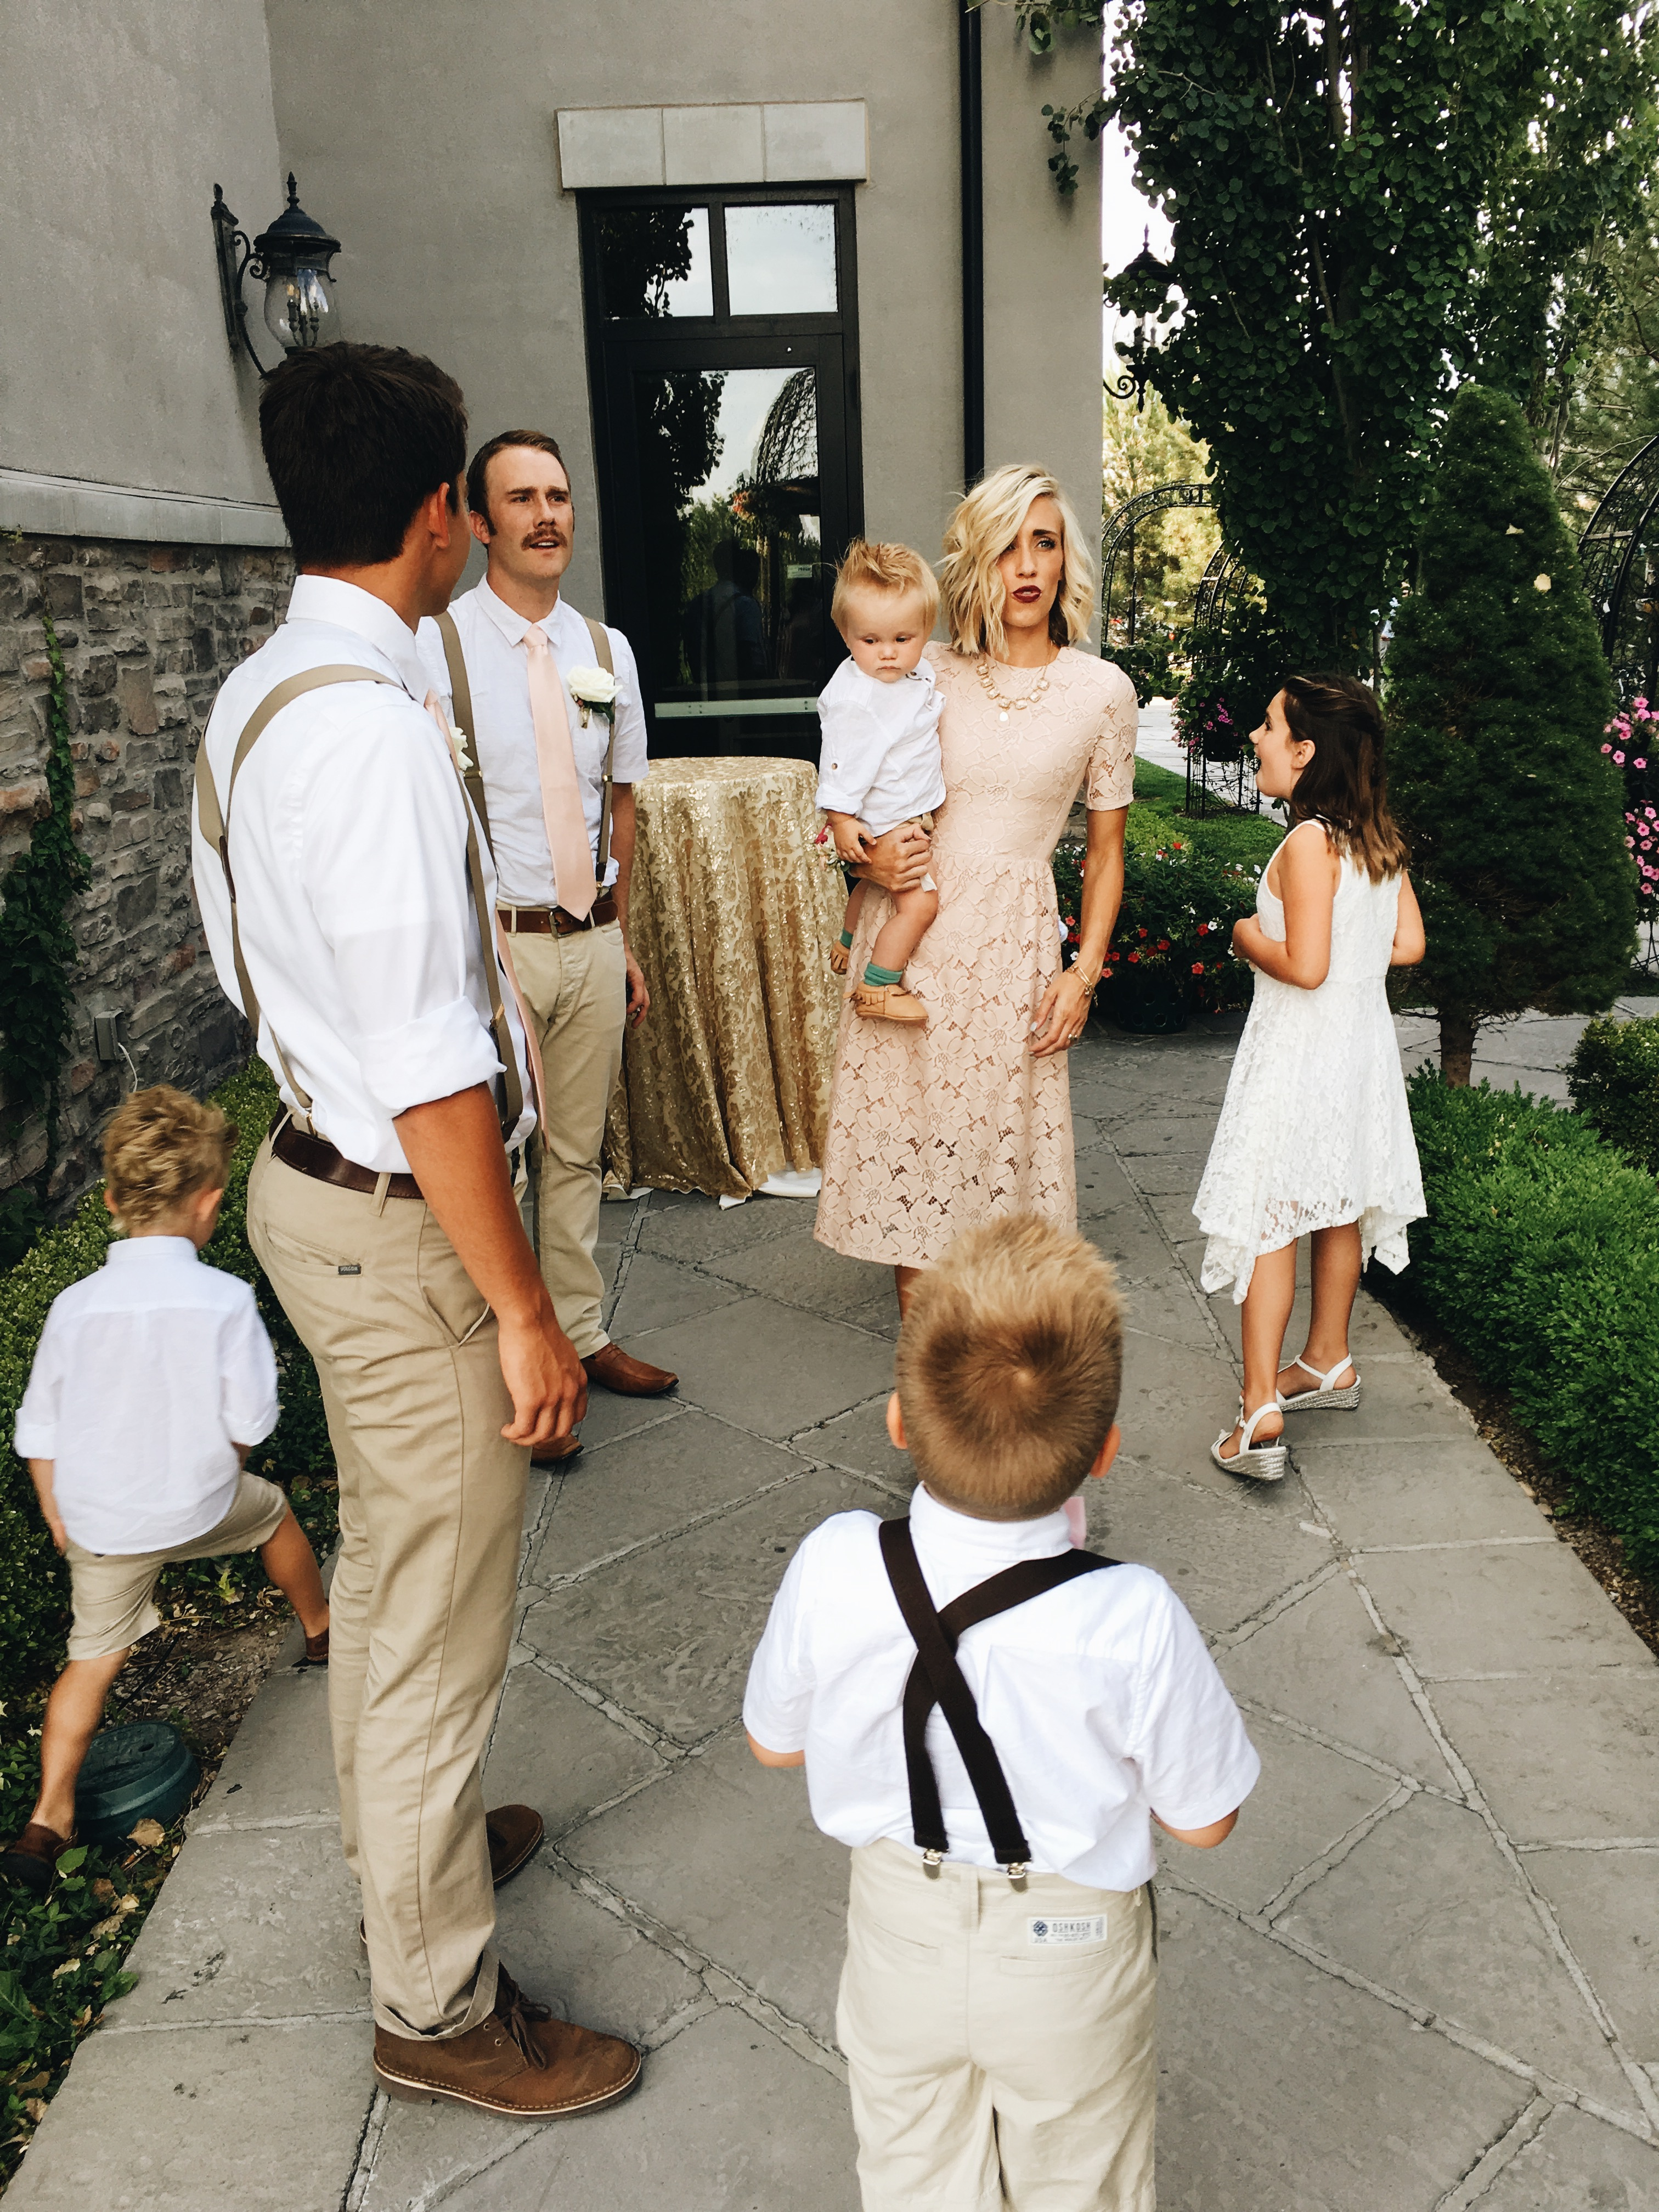 Family Wedding: Jeff & Kim Tie The Knot by social media influencer Ginger Parrish